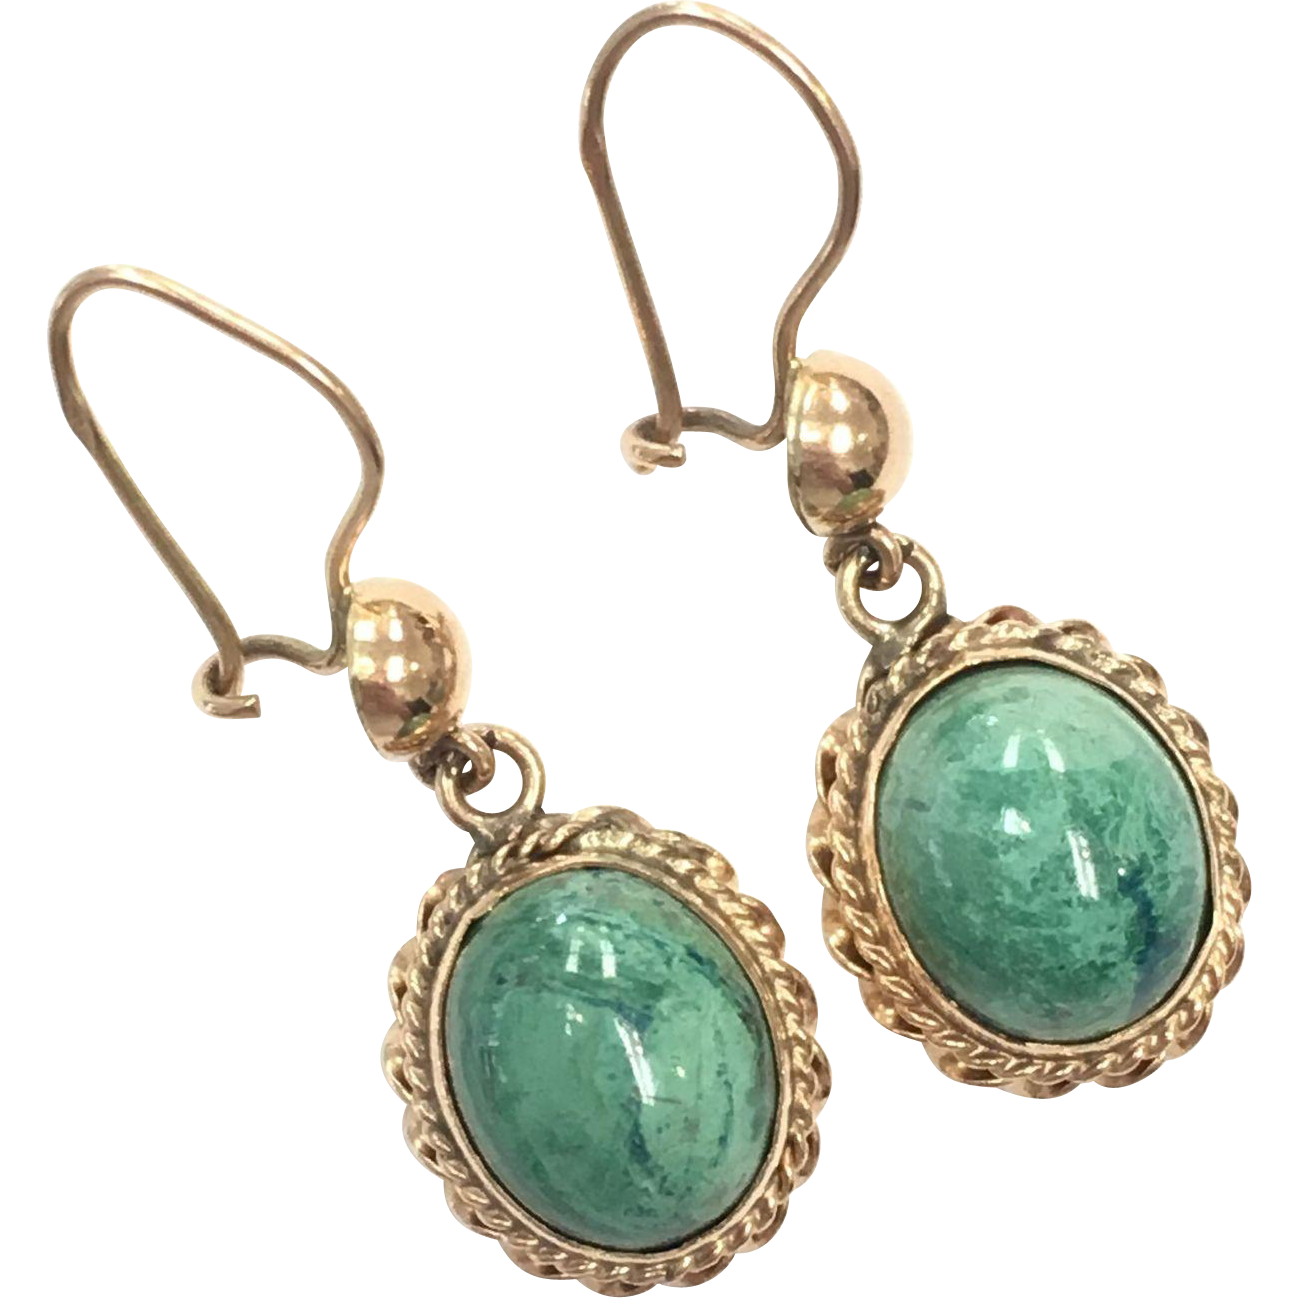 Vintage Pierced Turquoise Green Porcelain and Solid Gold Earrings